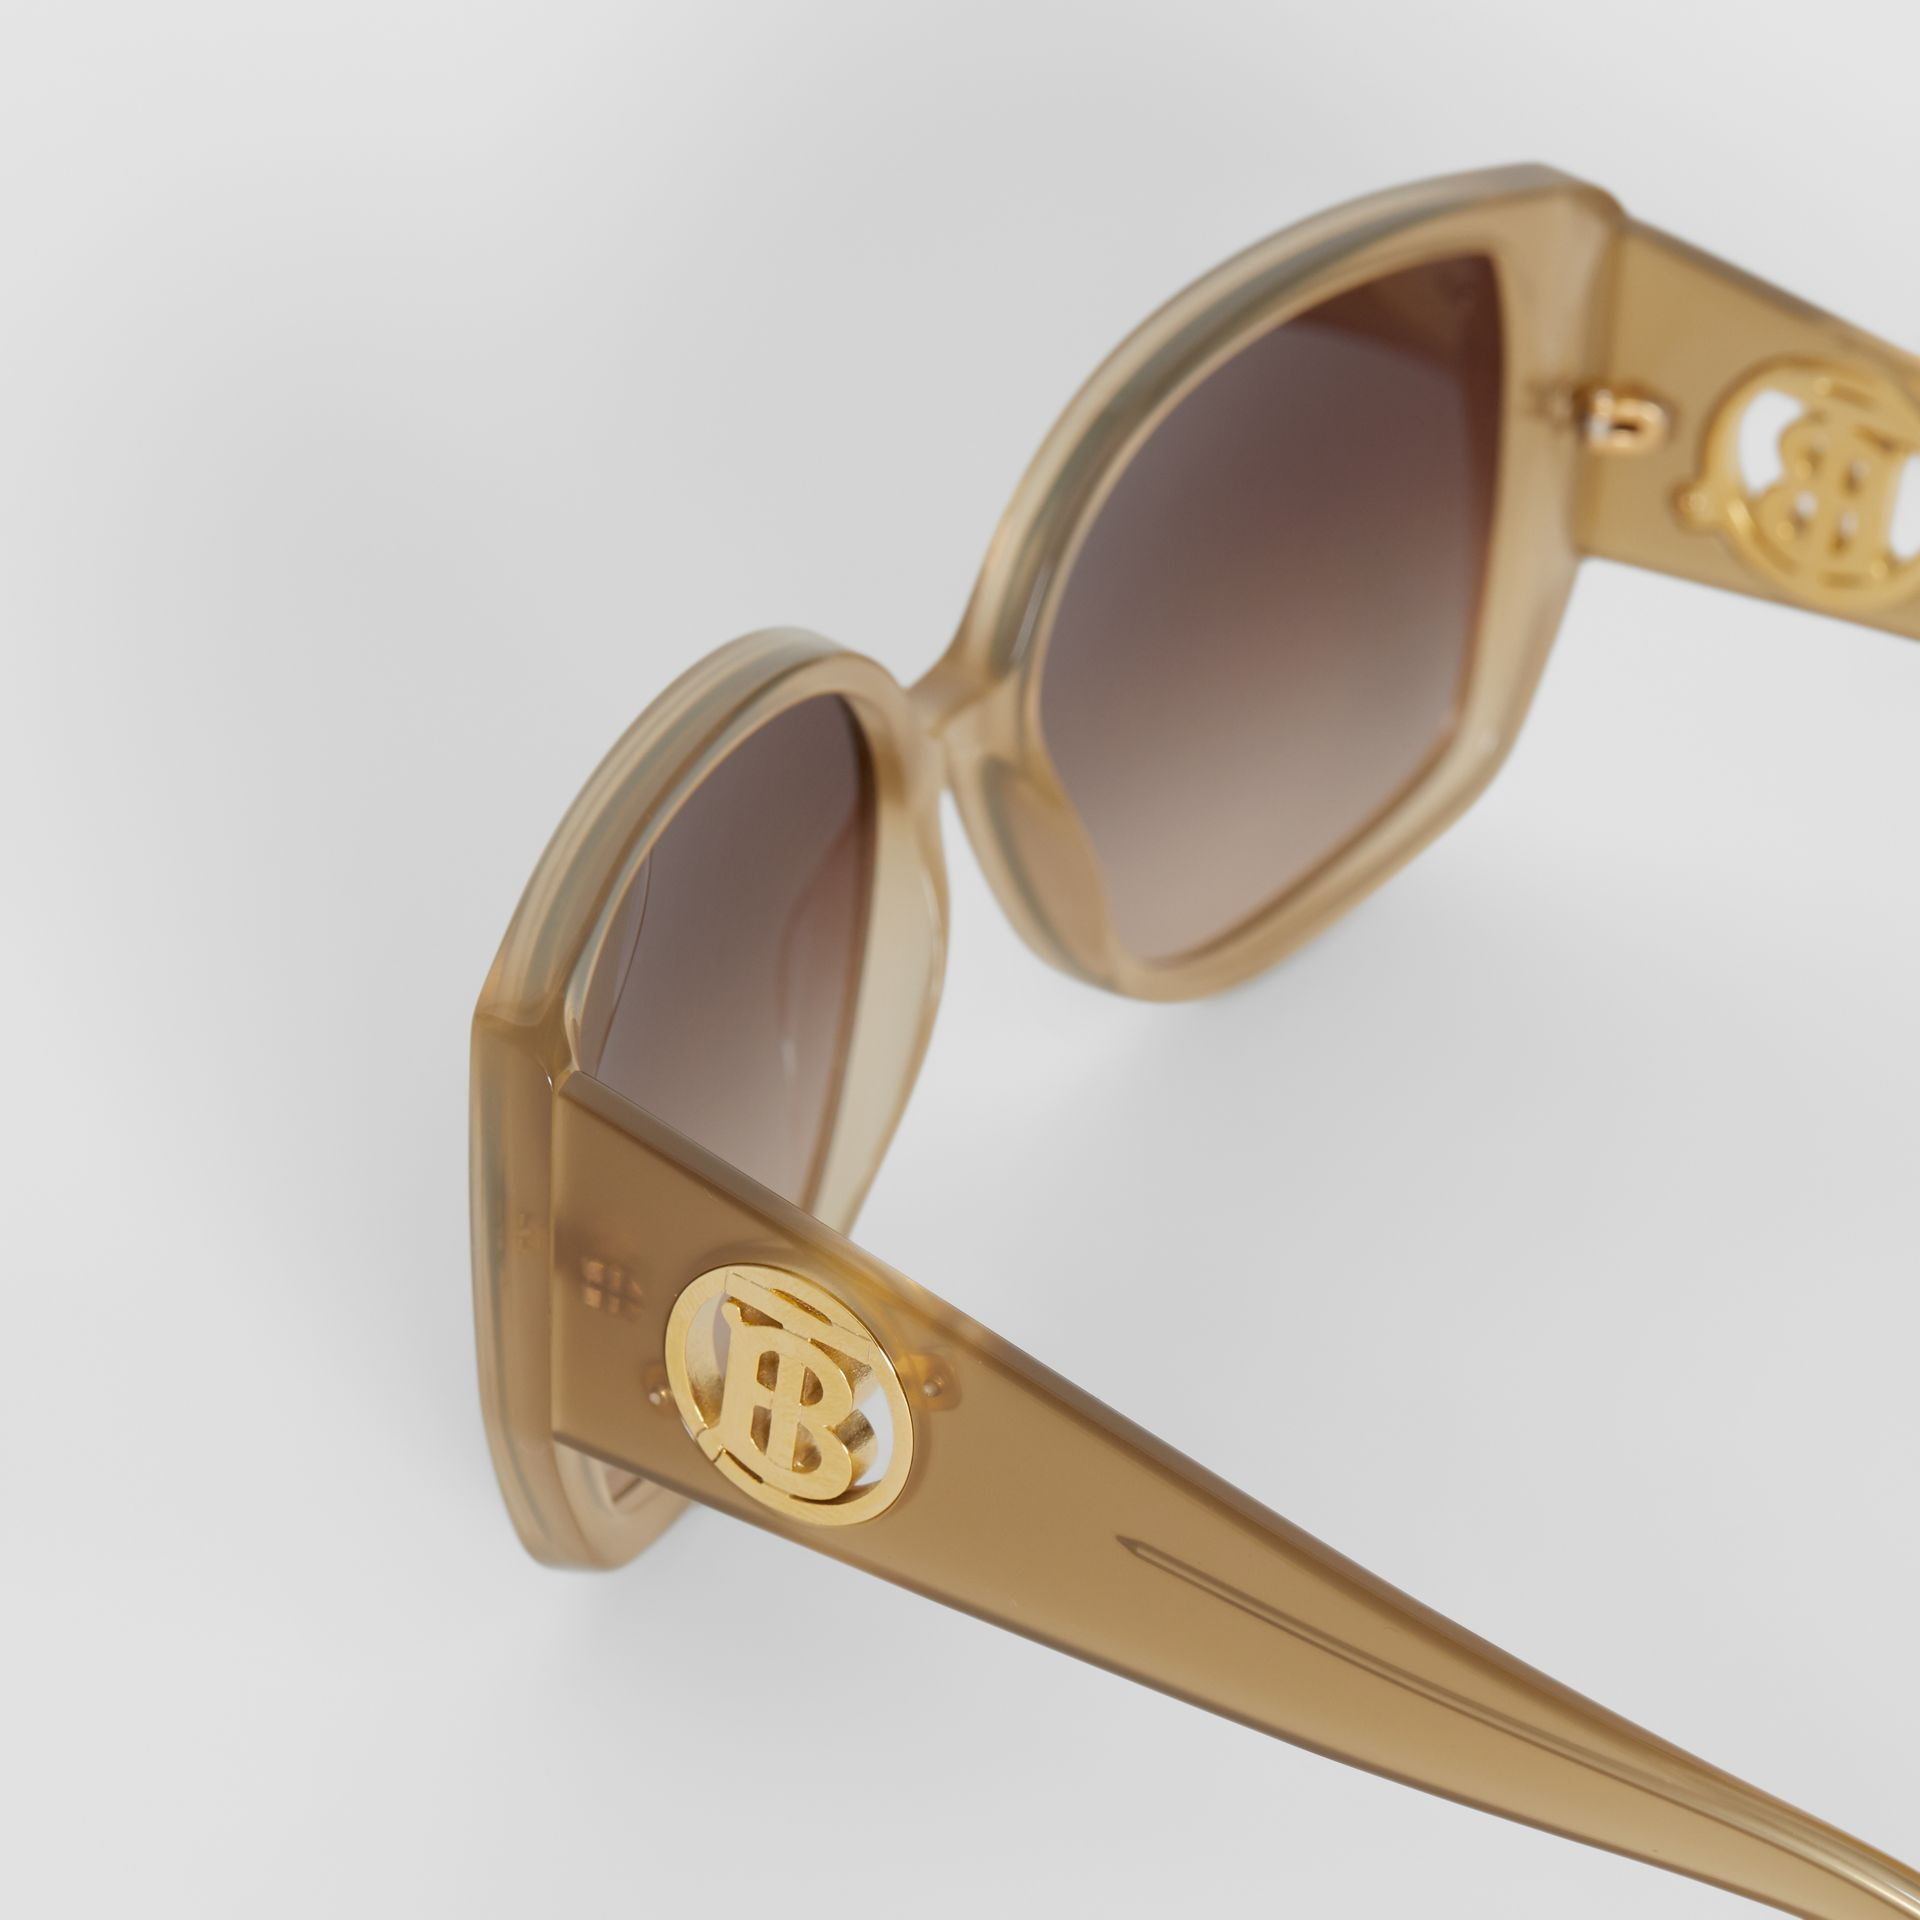 Oversized Butterfly Frame Sunglasses in Beige - Women | Burberry Australia - gallery image 5